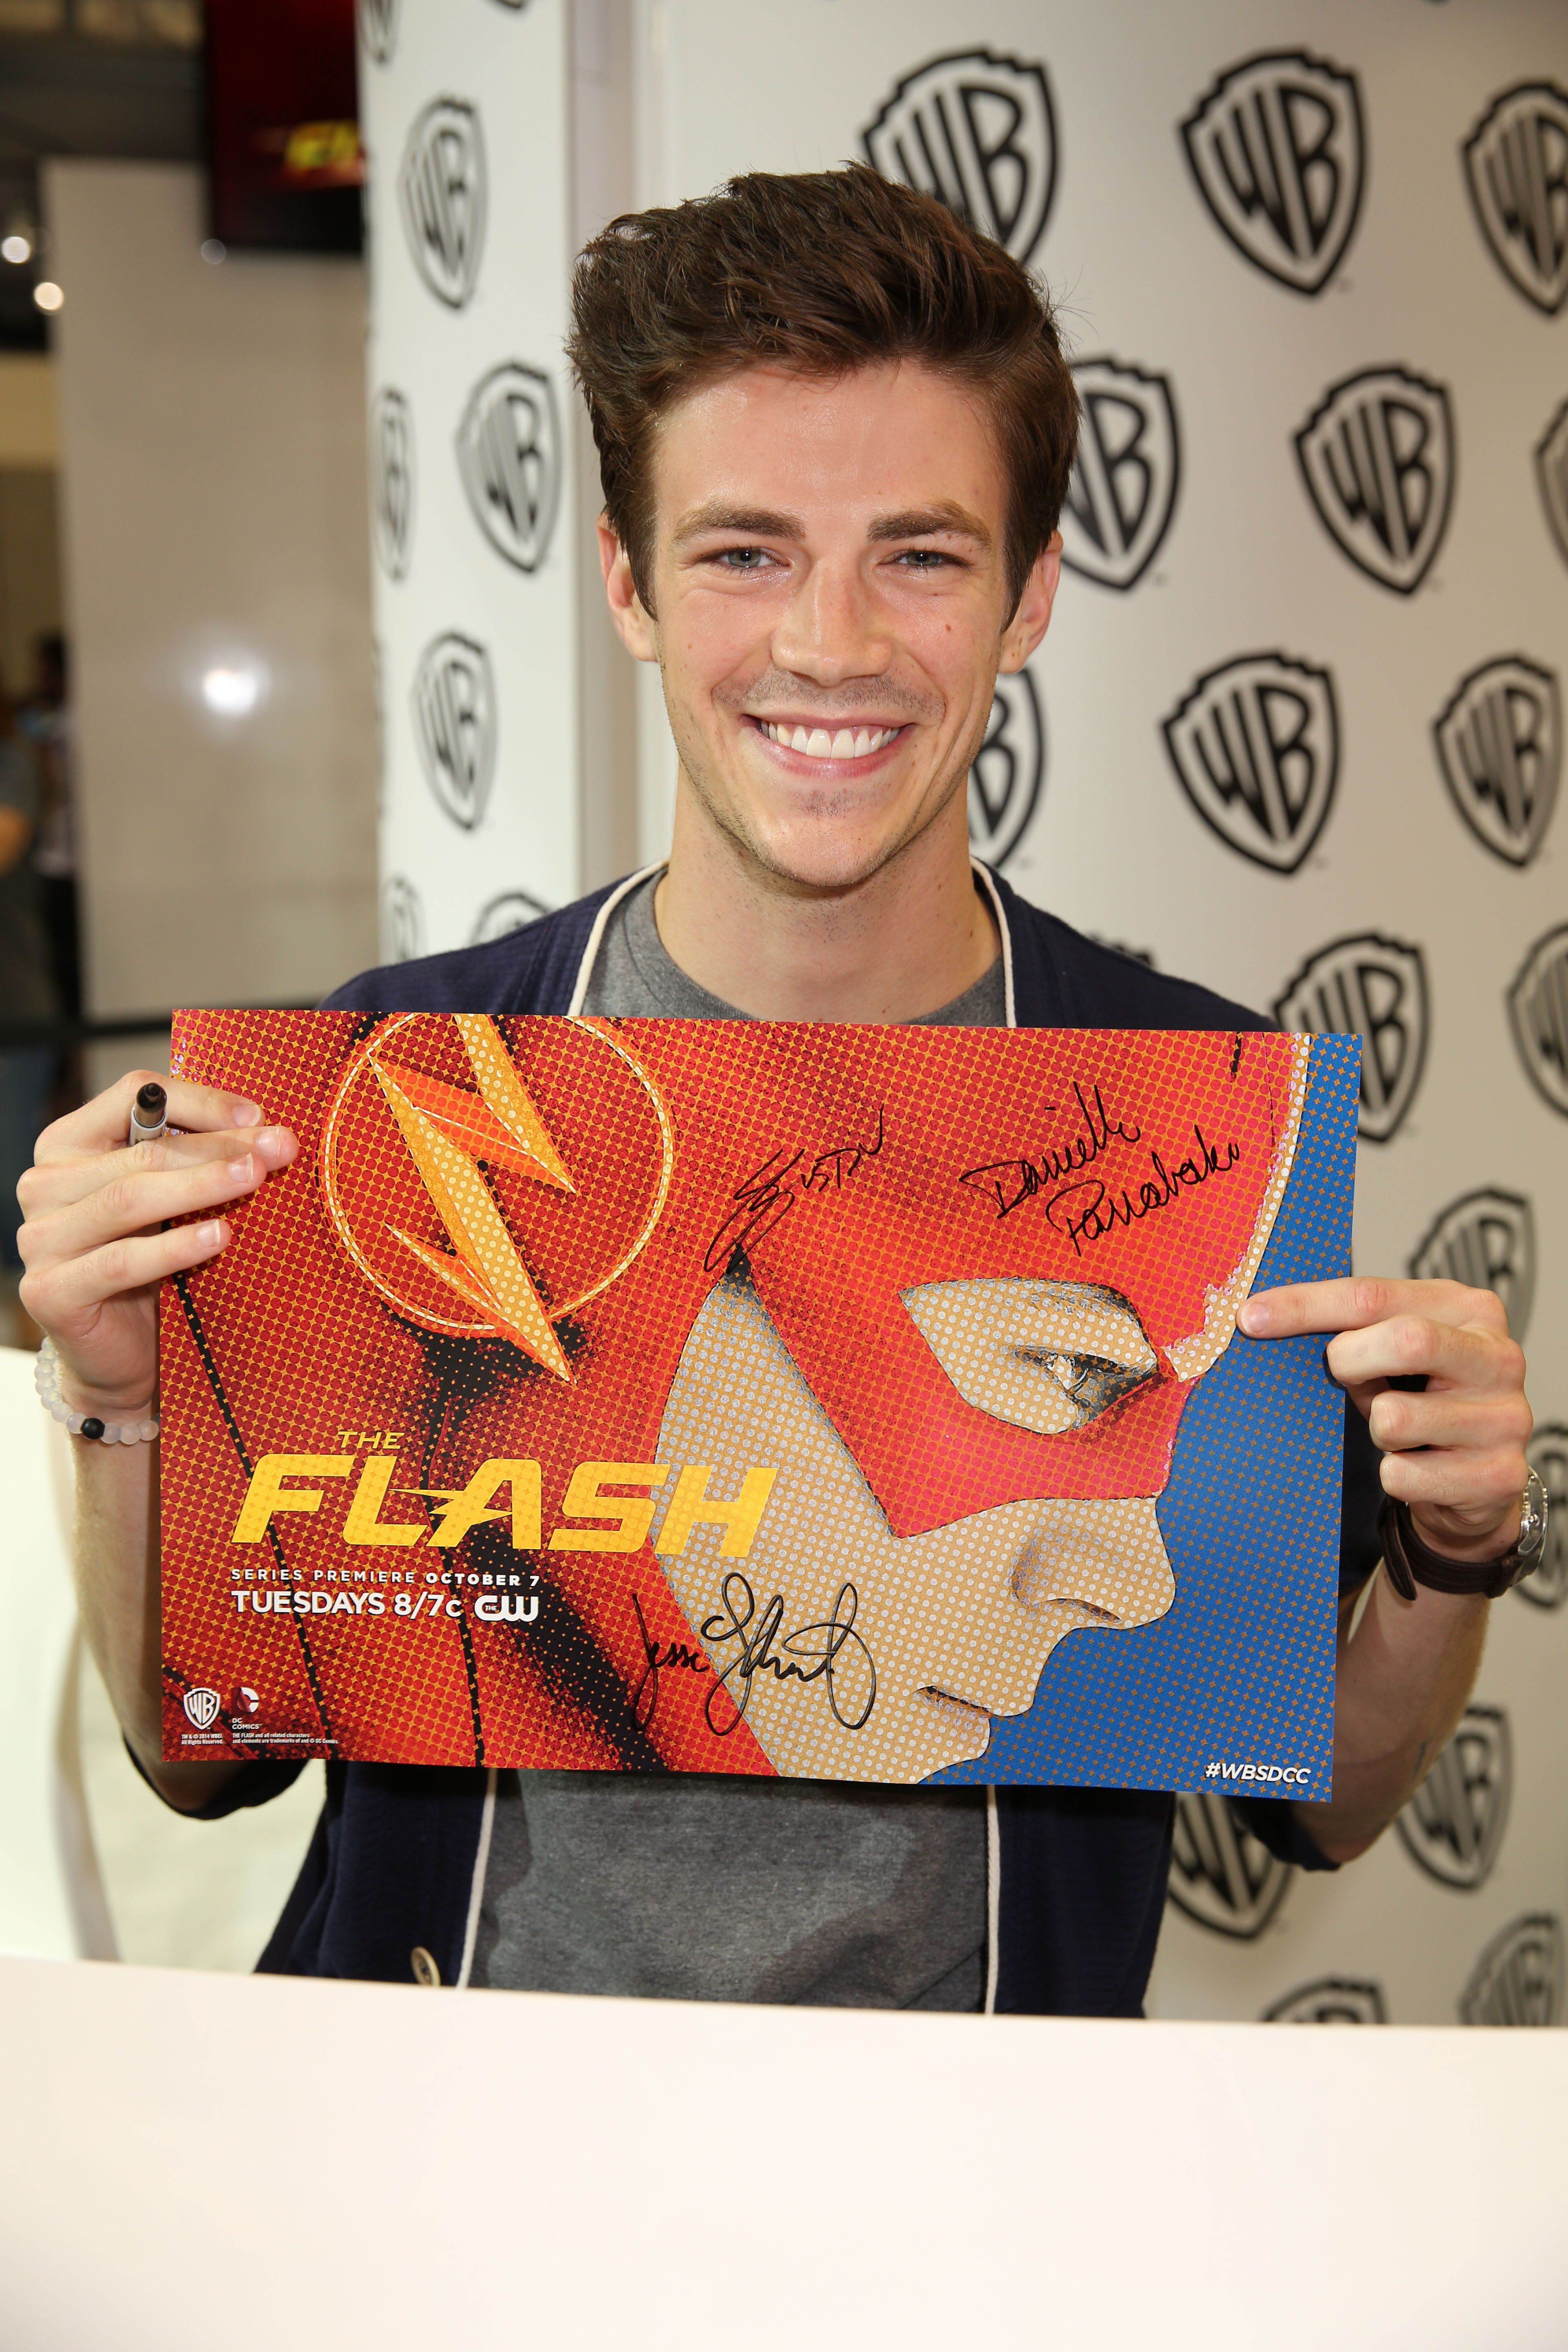 A series of flash. What kind of felicity appears in the 4 series of flash